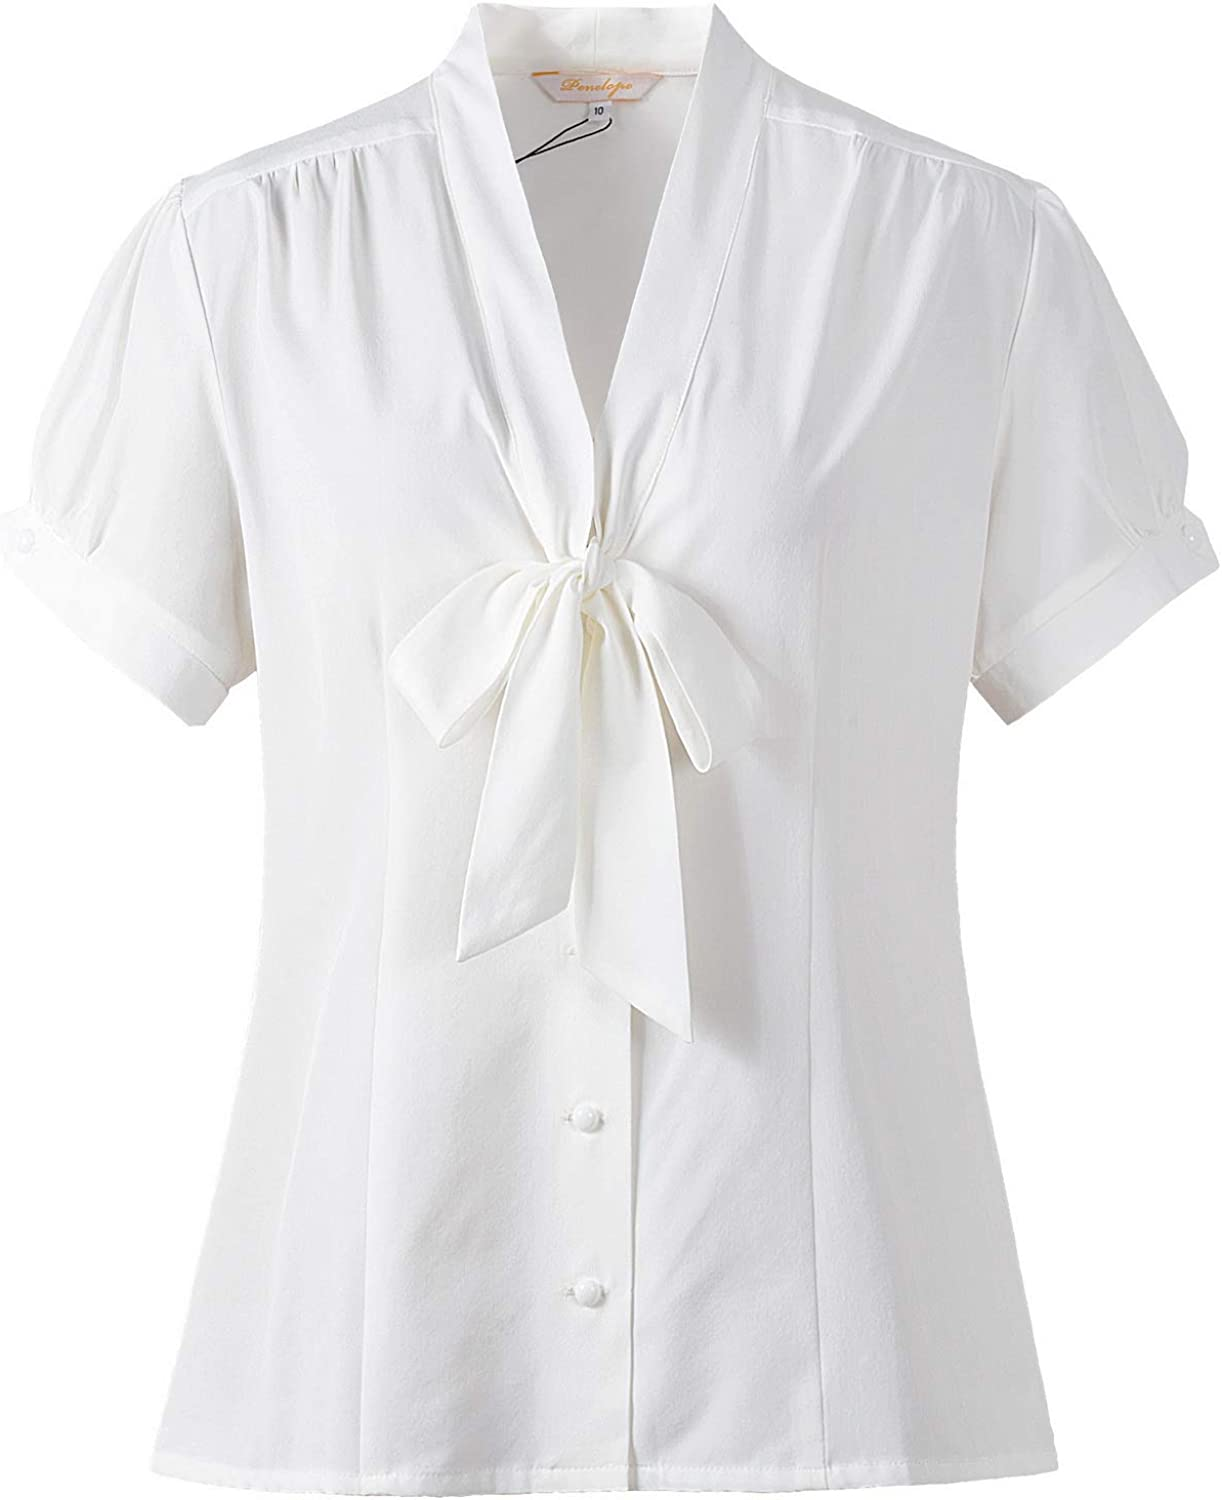 Womens Pussy Bow Blouse Tie Neck Short Sleeve Shirt 1940s Retro Vintage Style Tops